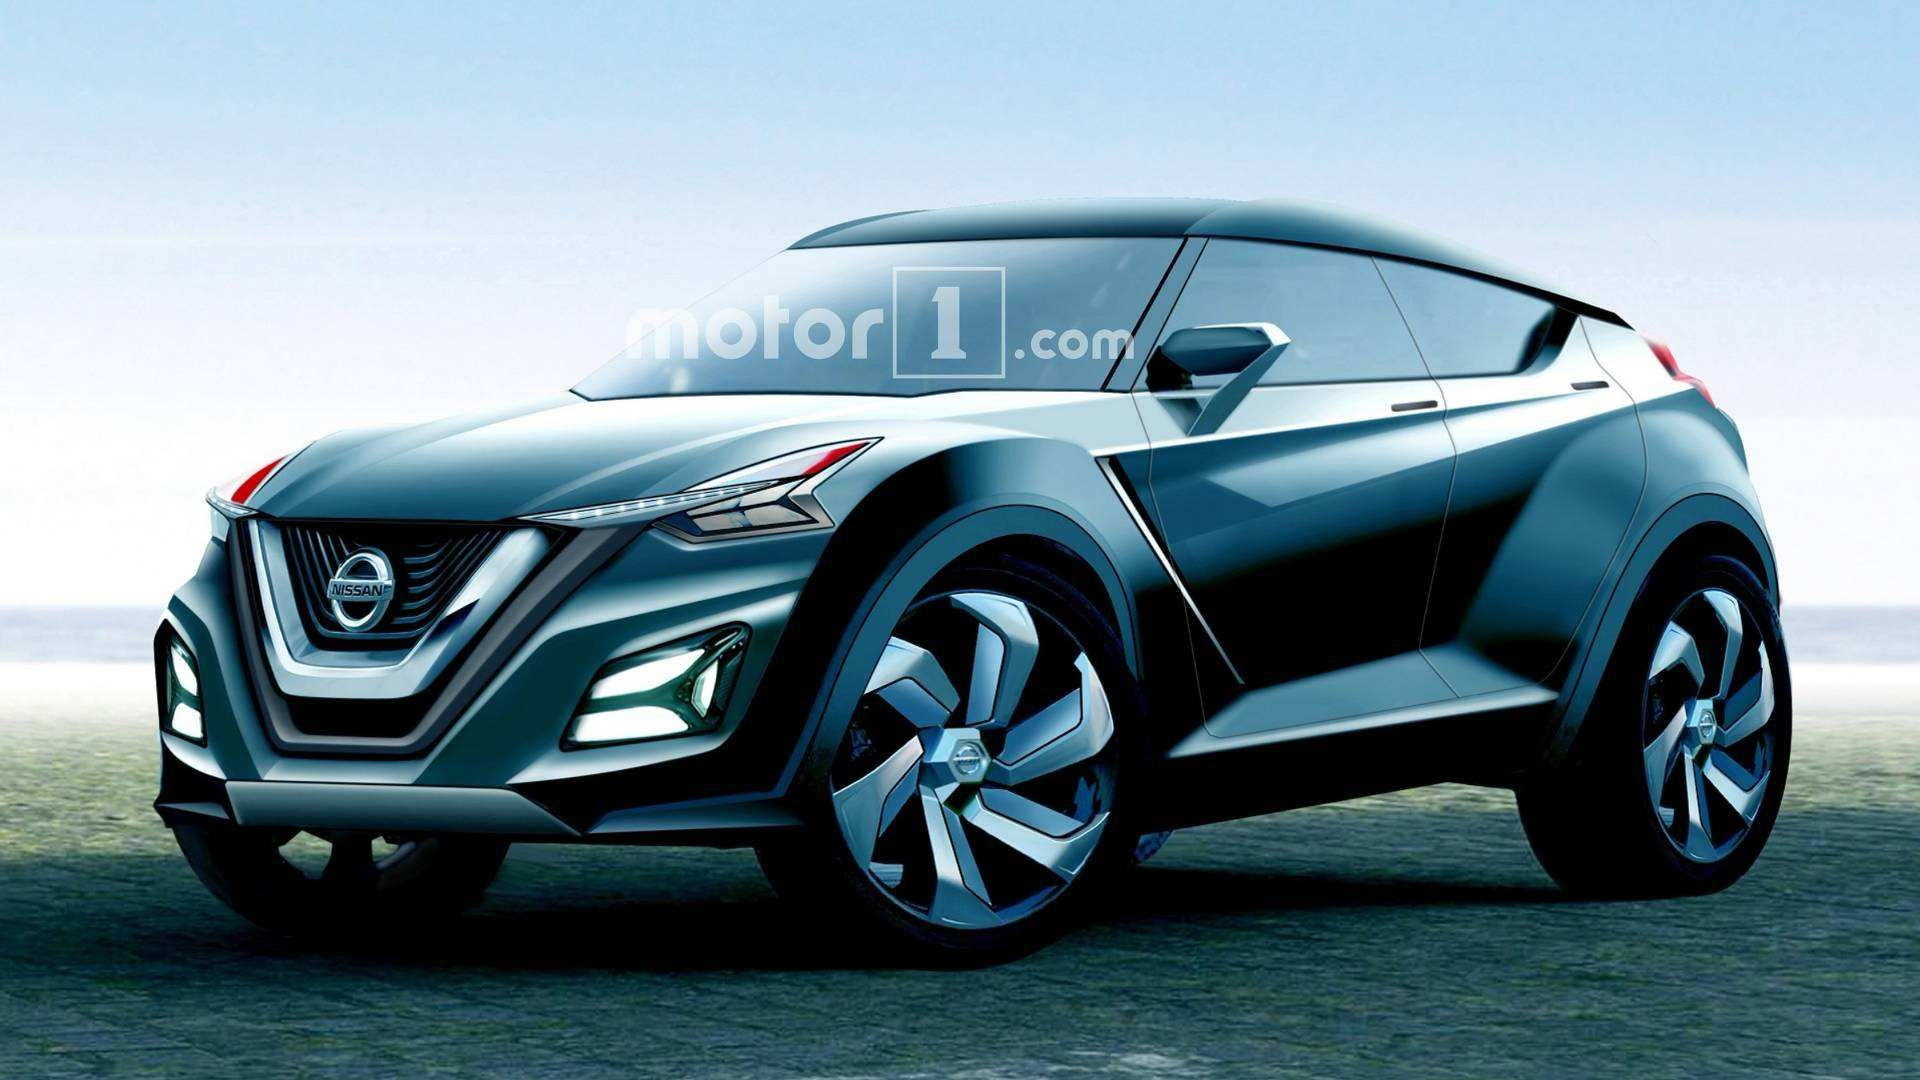 17 Gallery of New 2019 Nissan Juke Review Concept Specs by New 2019 Nissan Juke Review Concept